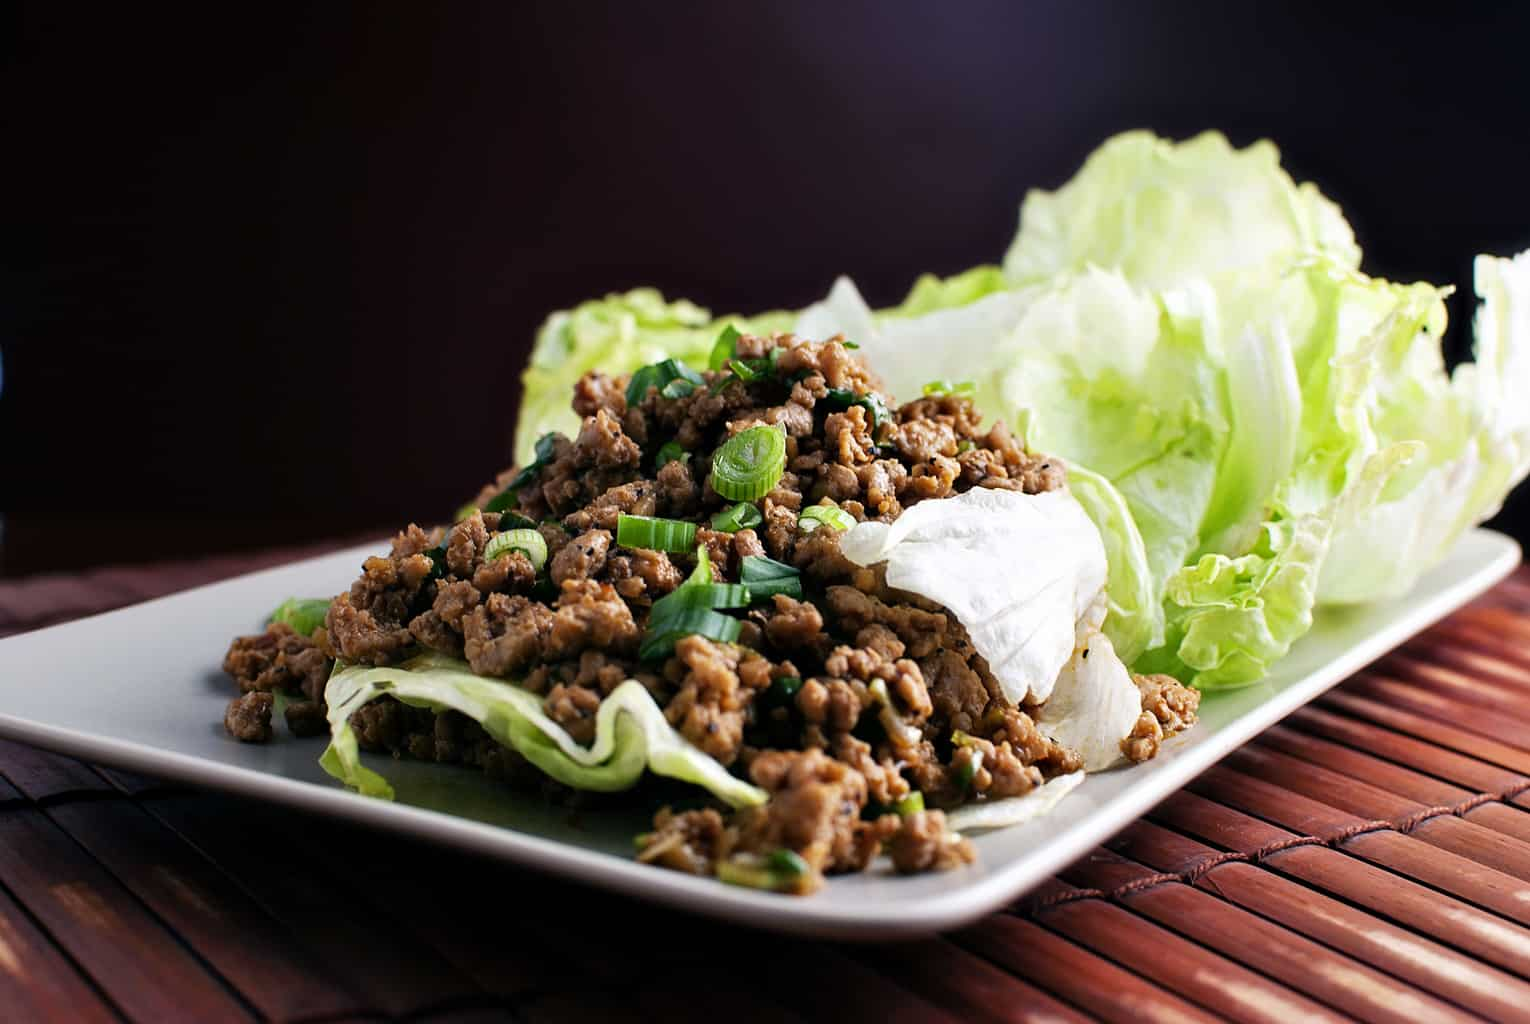 Lettuce Wraps so we can squeeze back into those jeans again.